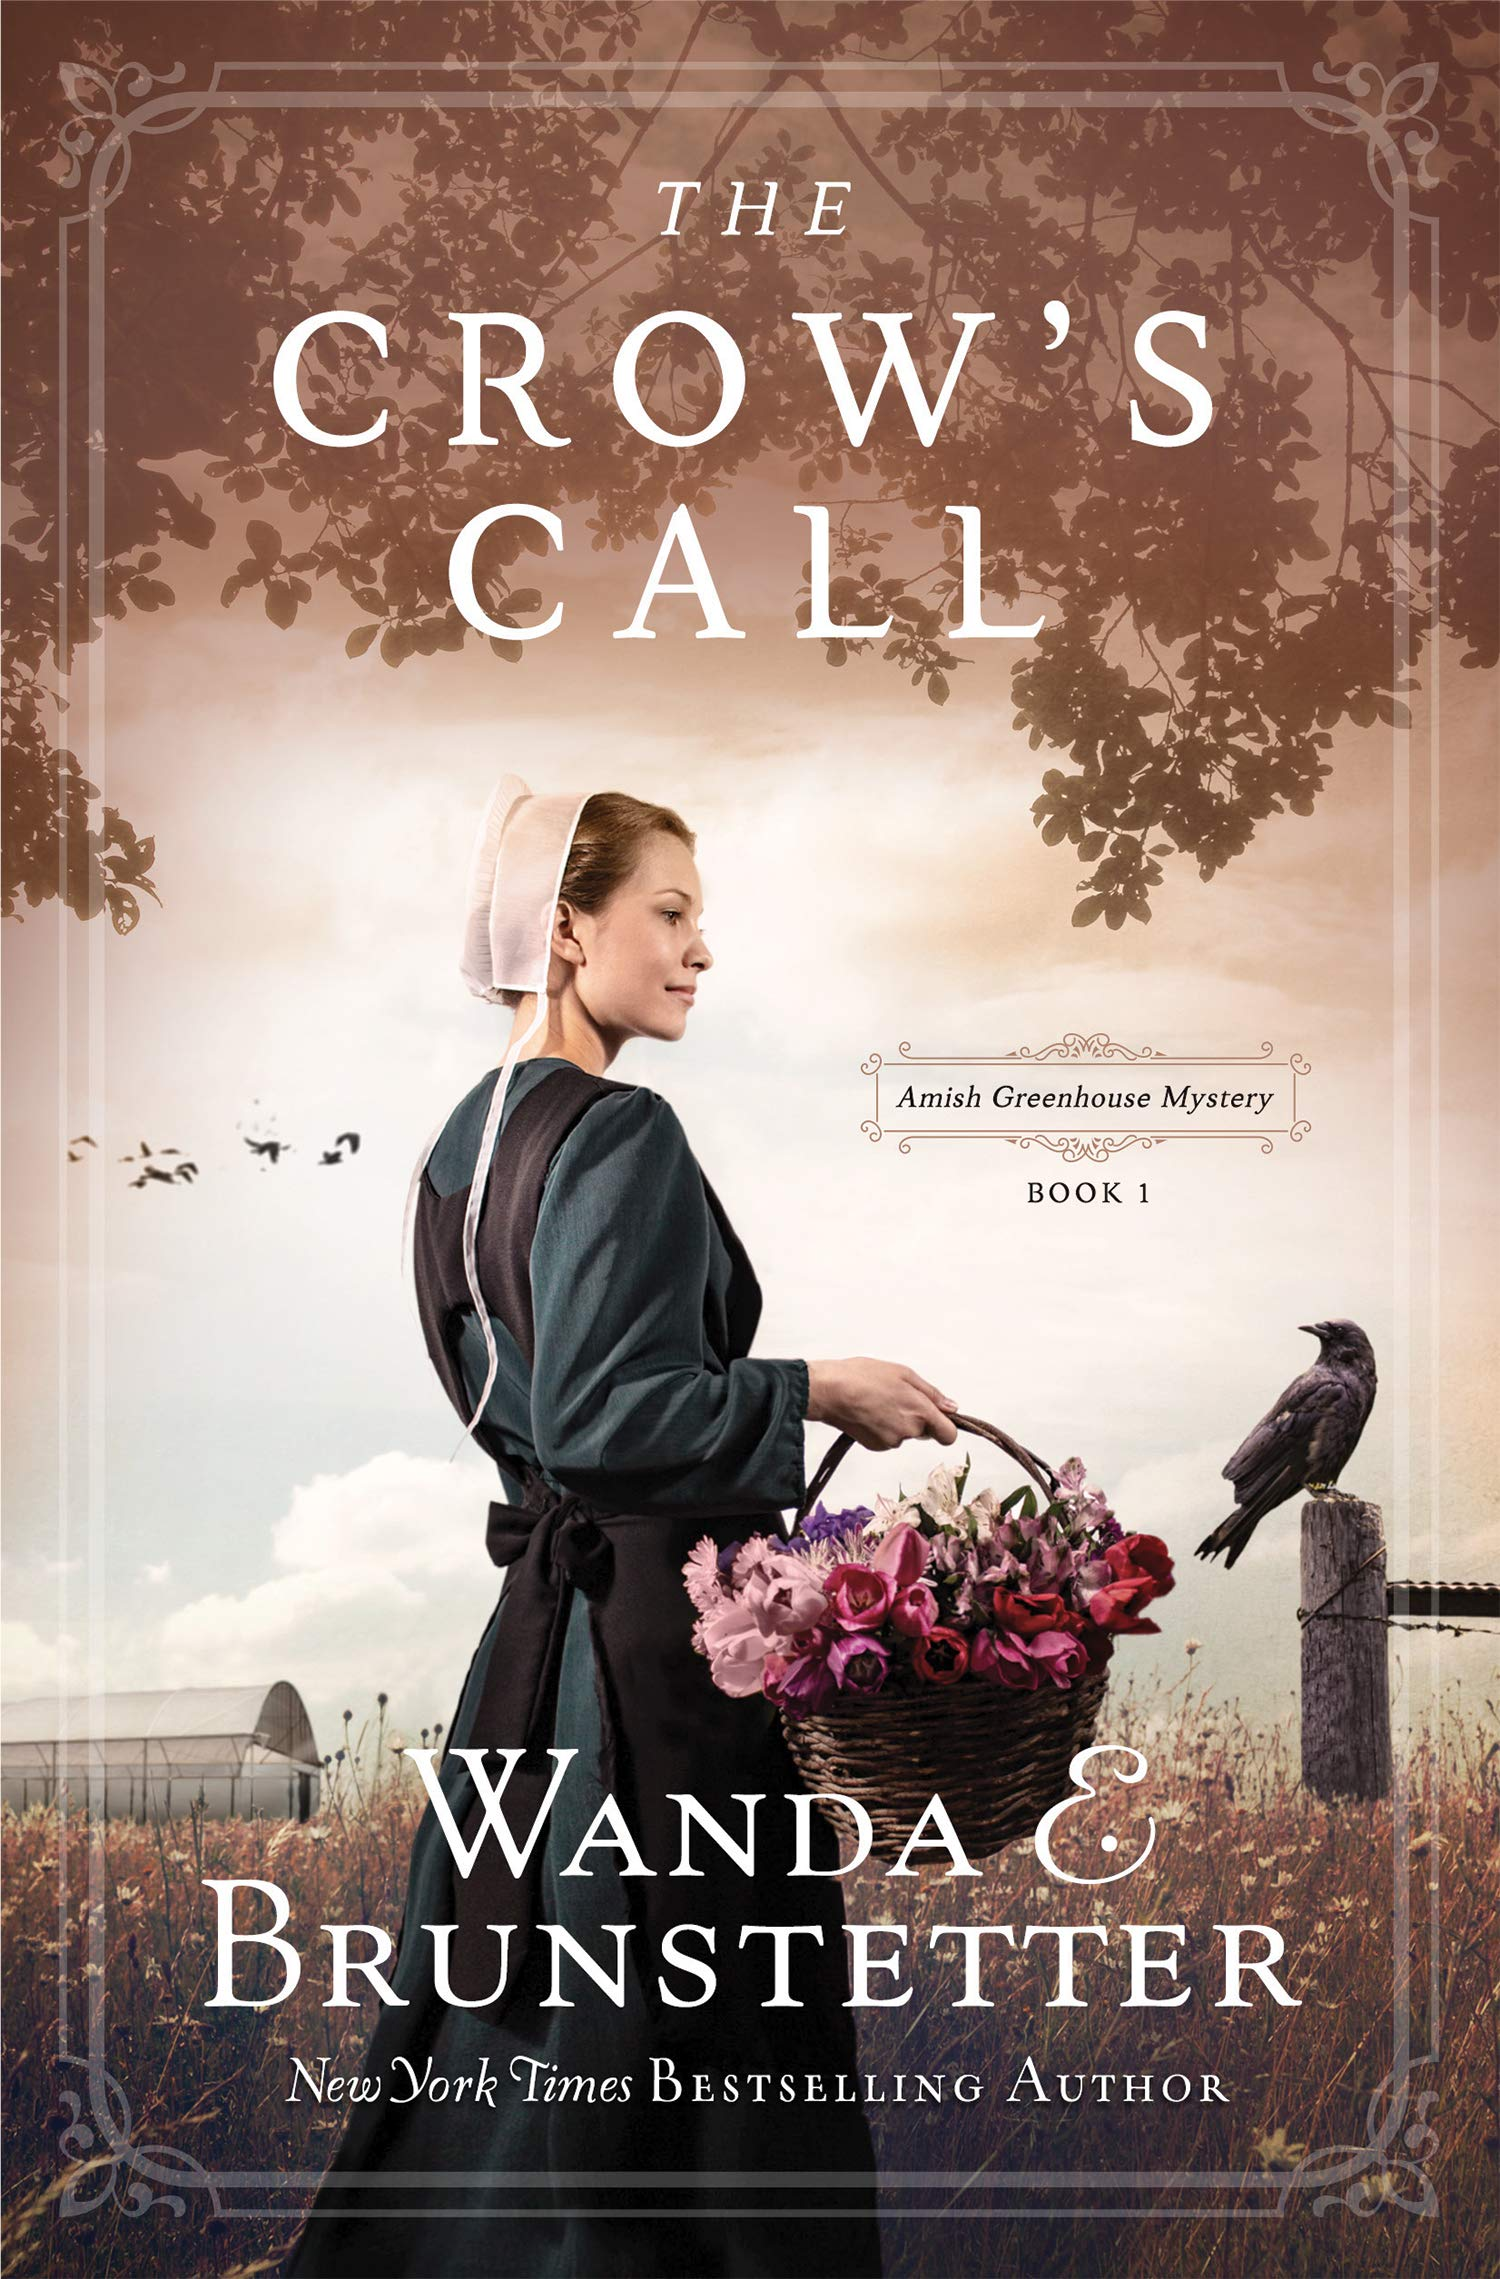 The Crow's Call: Amish Greenhouse Mystery - book 1 (Amish Greenhouse Mysteries)